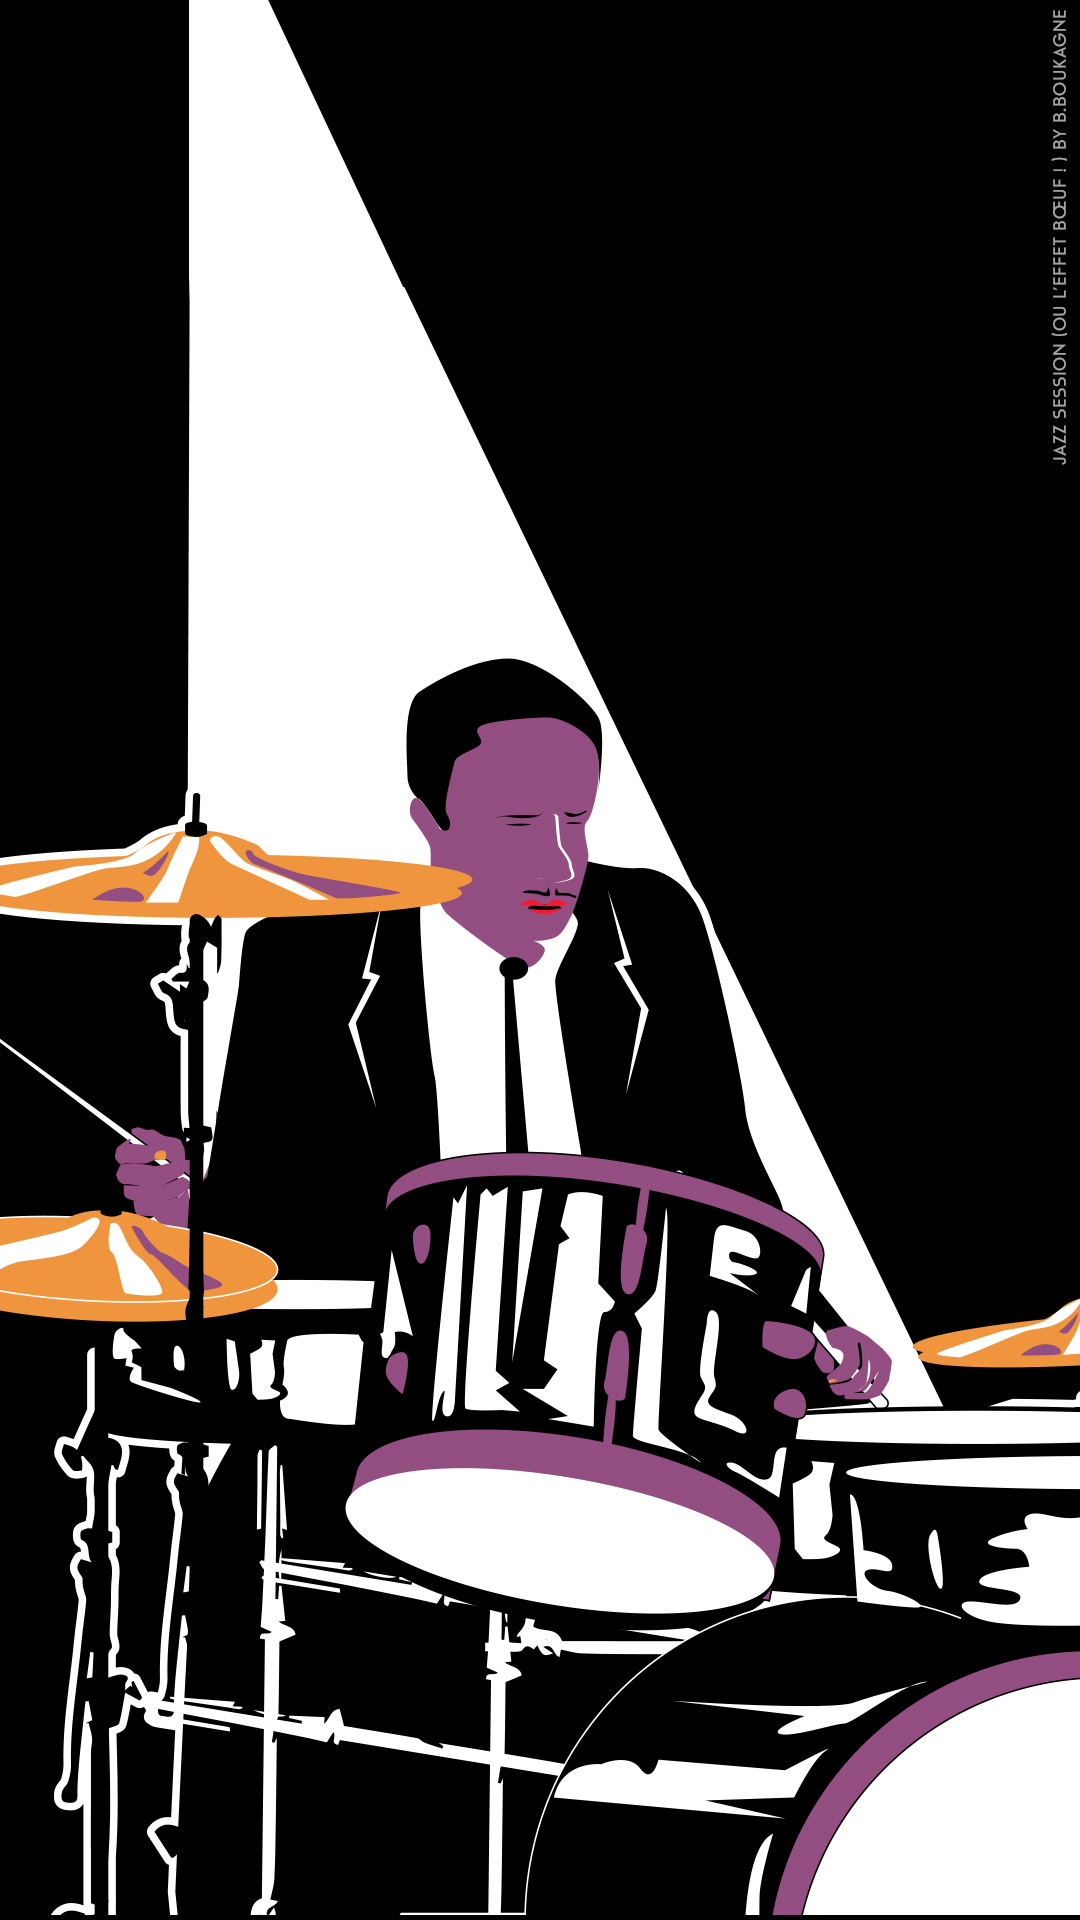 Drummer - Jazz Session by Benjamin Boukagne